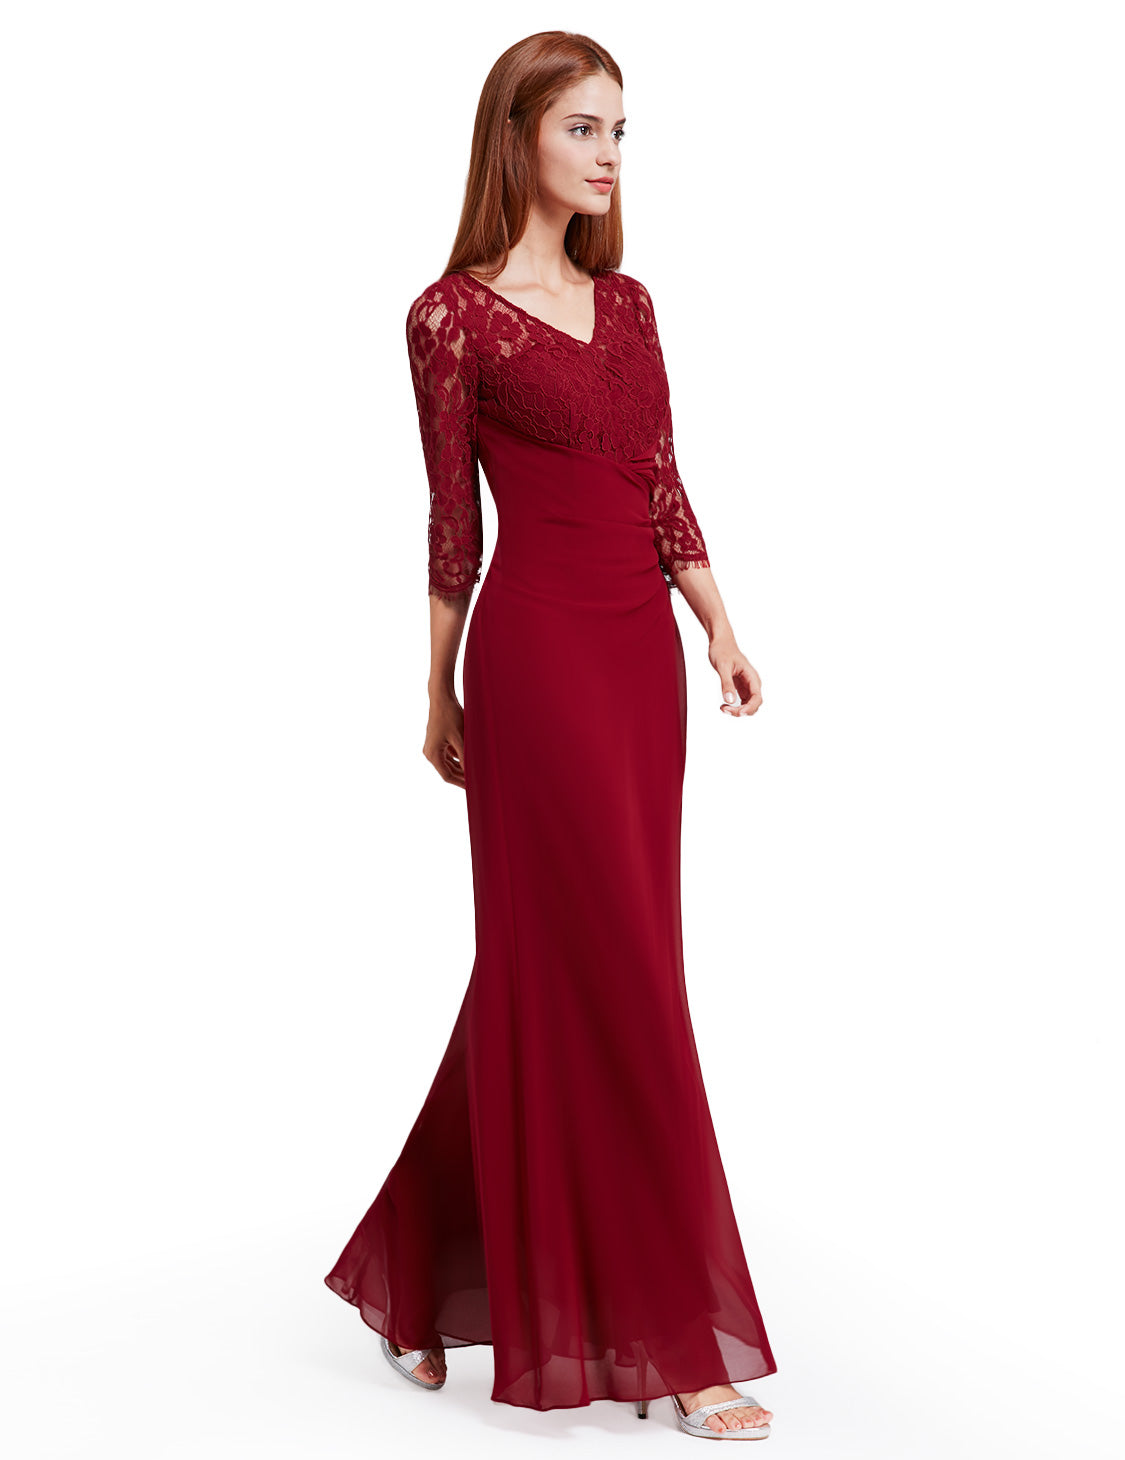 Obeige Elegant Half Sleeve Long Evening Party Dress